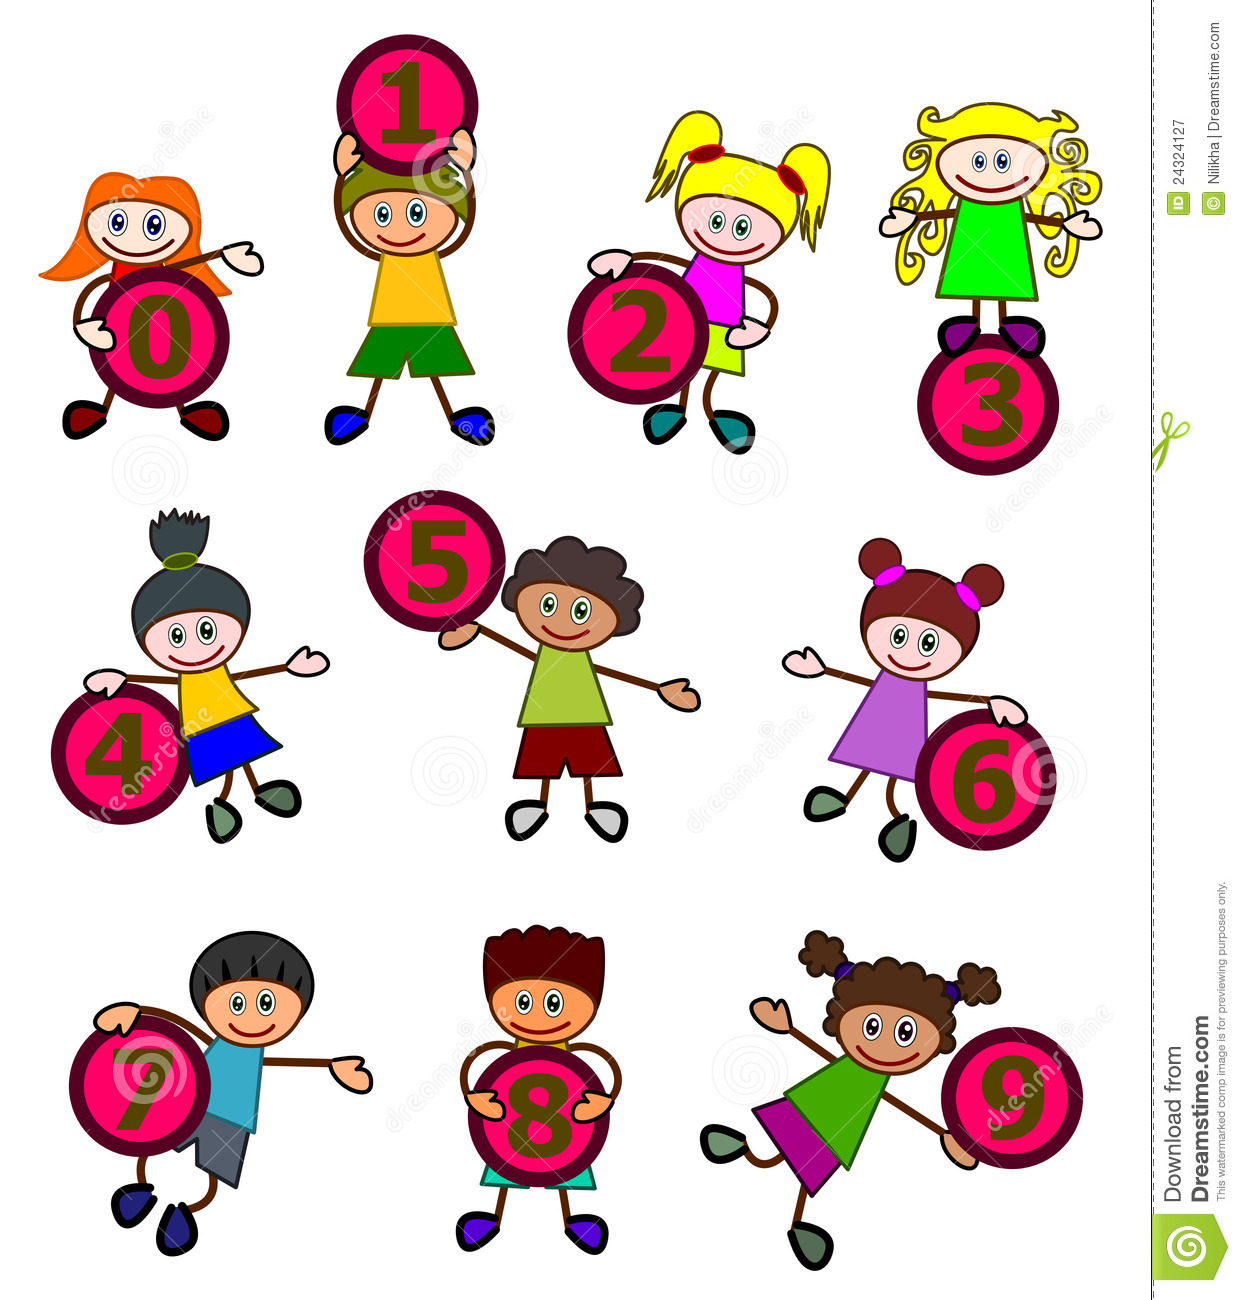 Kids with numbers clipart clip art free stock Counting Numbers Clipart - Clipart Kid clip art free stock